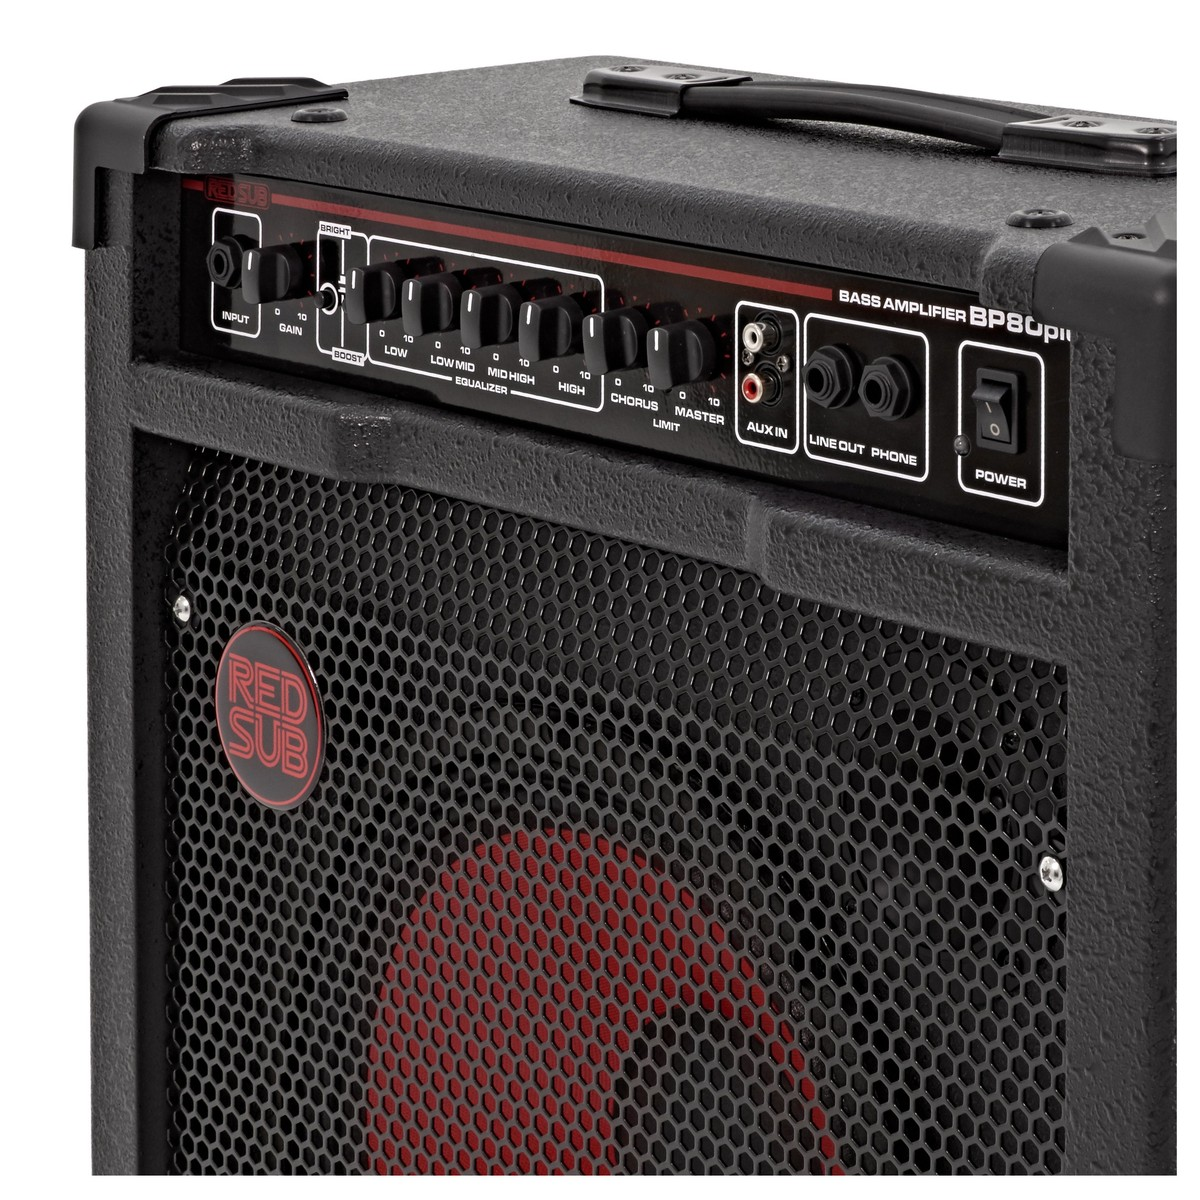 Redsub Bp80plus 80w Bass Guitar Amplifier At Gear4music Apmilifier Mini Circuit And Explanation Bp80 Loading Zoom